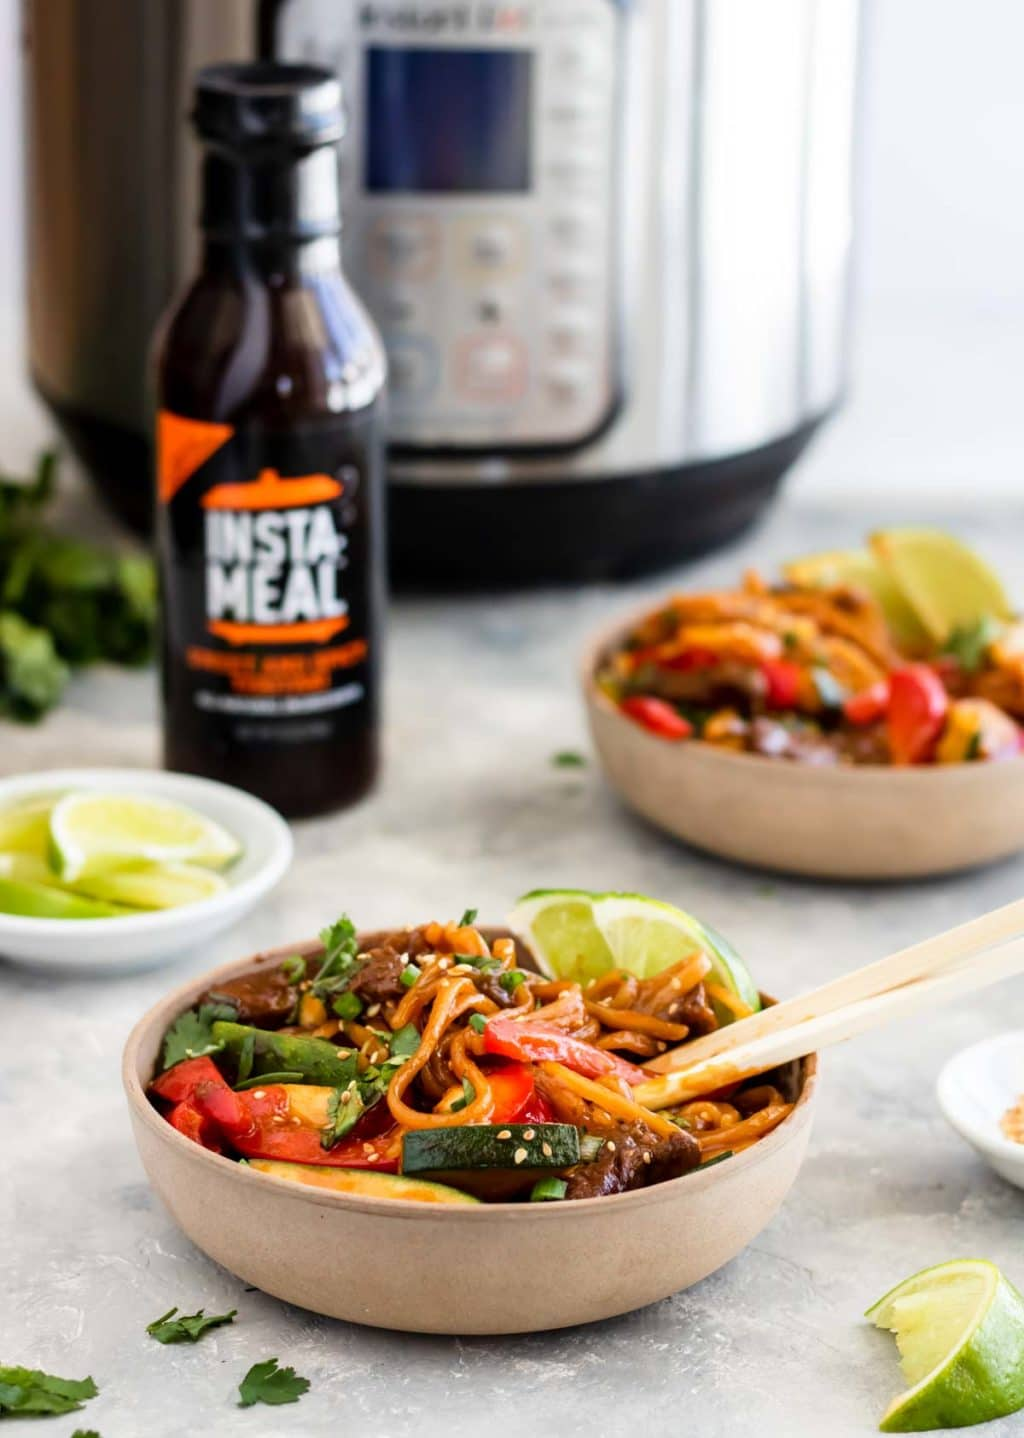 Teriyaki Beef Noodles in a bowl with an Instant Pot in the background